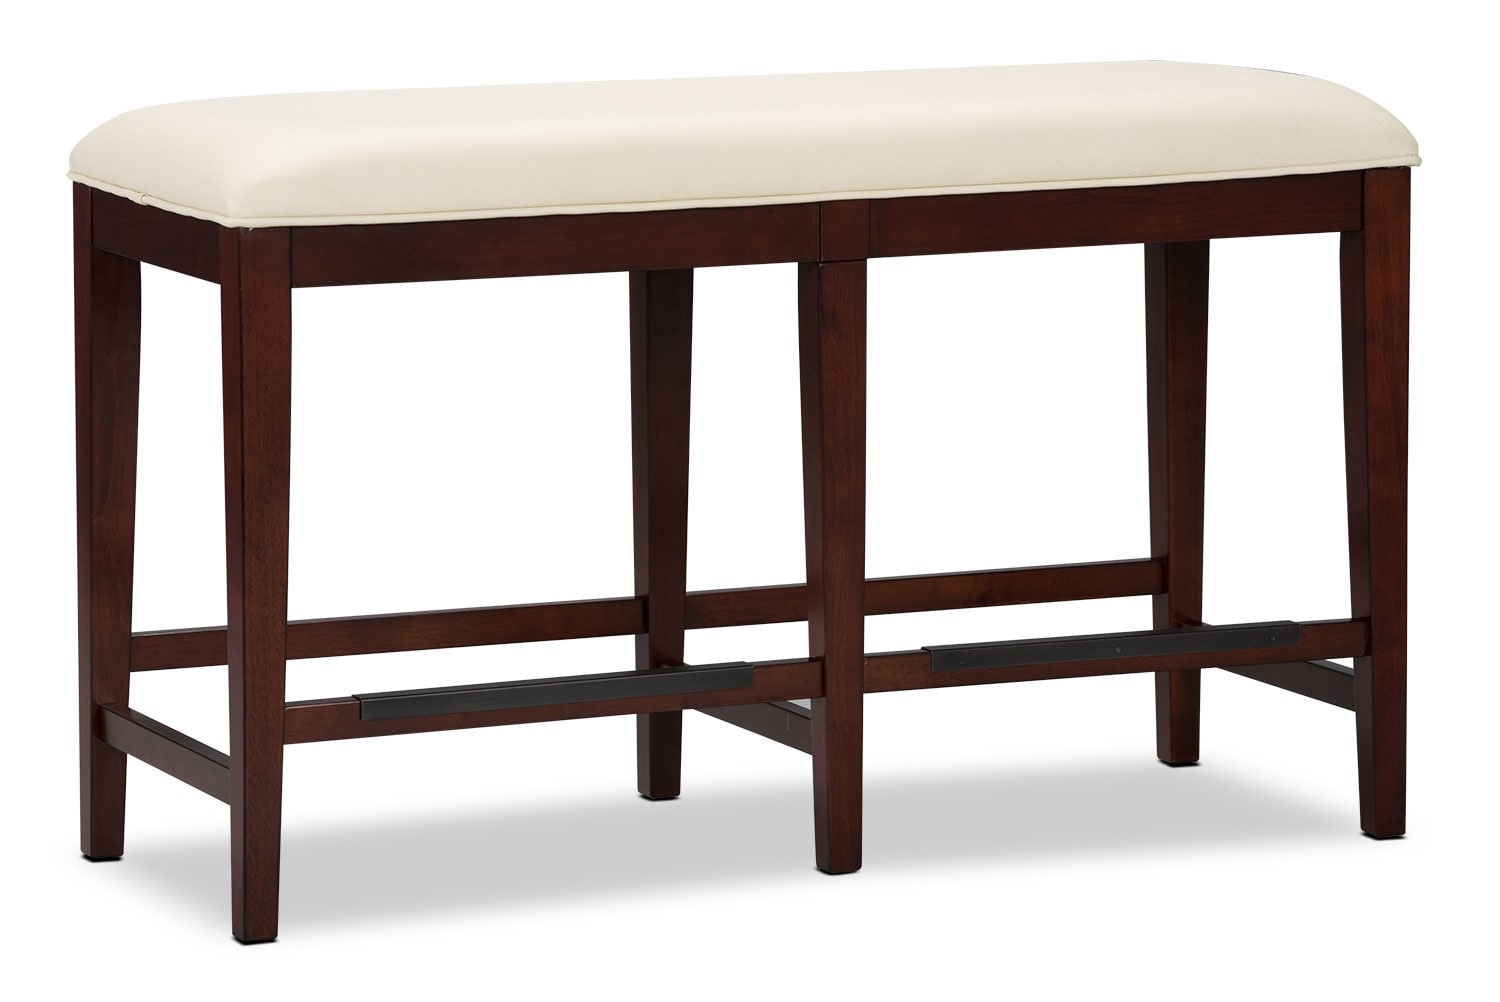 Counter Height Dining Bench : Dining Room Furniture - Zeno Counter-Height Dining Bench